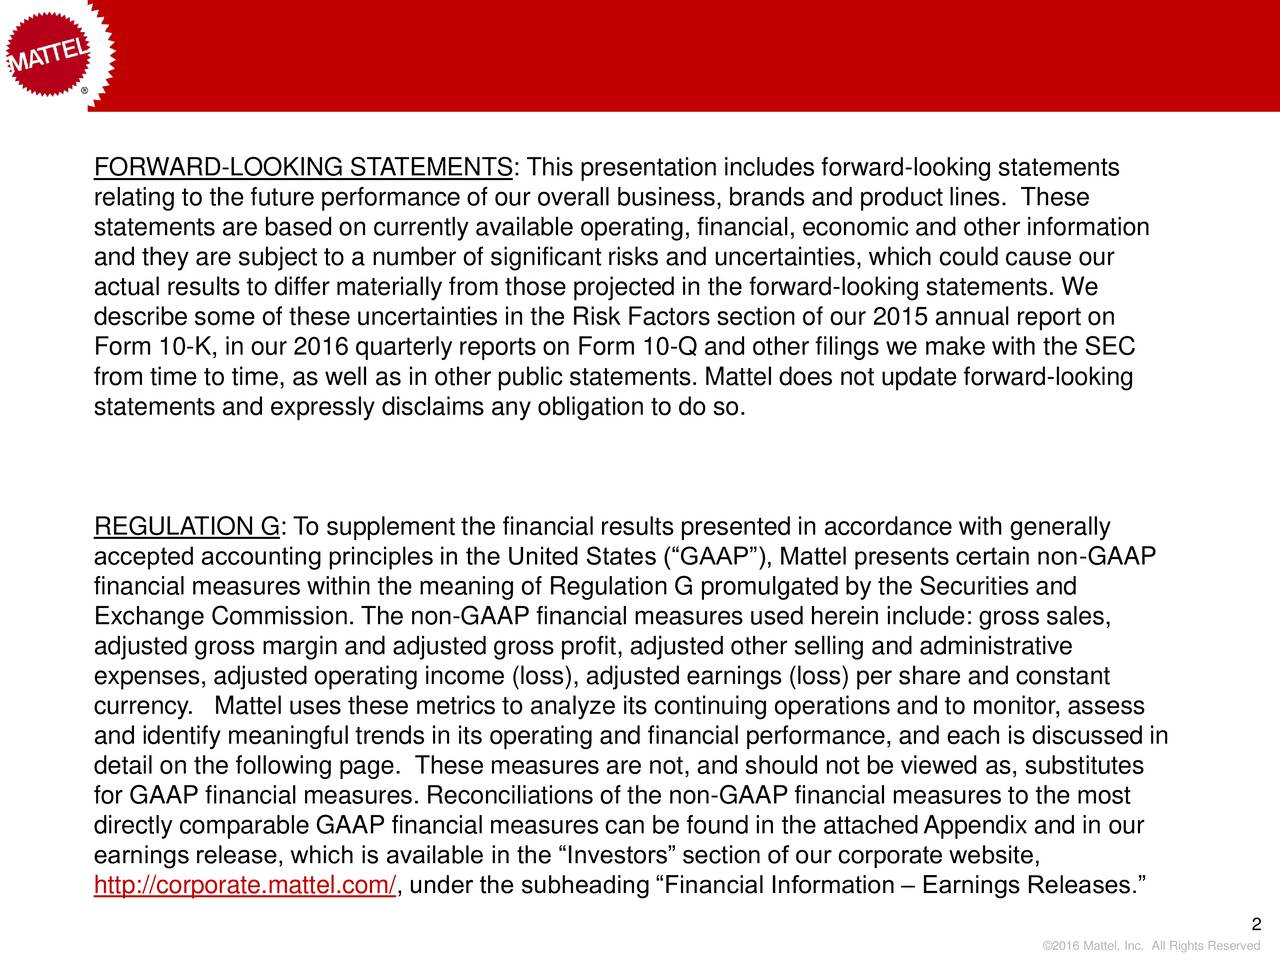 relating to the future performance of our overall business, brands and product lines. These statements are based on currently available operating, financial, economic and other information and they are subject to a number of significant risks and uncertainties, which could cause our actual results to differ materially from those projected in the forward-looking statements. We describe some of these uncertainties in the Risk Factors section of our 2015 annual report on Form 10-K, in our 2016 quarterly reports on Form 10-Q and other filings we make with the SEC from time to time, as well as in other public statements. Mattel does not update forward-looking statements and expressly disclaims any obligation to do so. REGULATION G: To supplement the financial results presented in accordance with generally accepted accounting principles in the United States (GAAP), Mattel presents certain non-GAAP financial measures within the meaning of Regulation G promulgated by the Securities and Exchange Commission. The non-GAAP financial measures used herein include: gross sales, adjusted gross margin and adjusted gross profit, adjusted other selling and administrative expenses, adjusted operating income (loss), adjusted earnings (loss) per share and constant currency. Mattel uses these metrics to analyze its continuing operations and to monitor, assess and identify meaningful trends in its operating and financial performance, and each is discussed in detail on the following page. These measures are not, and should not be viewed as, substitutes for GAAP financial measures. Reconciliations of the non-GAAP financial measures to the most directly comparable GAAP financial measures can be found in the attachedAppendix and in our earnings release, which is available in the Investors section of our corporate website, http://corporate.mattel.com/, under the subheading Financial Information  Earnings Releases. 2